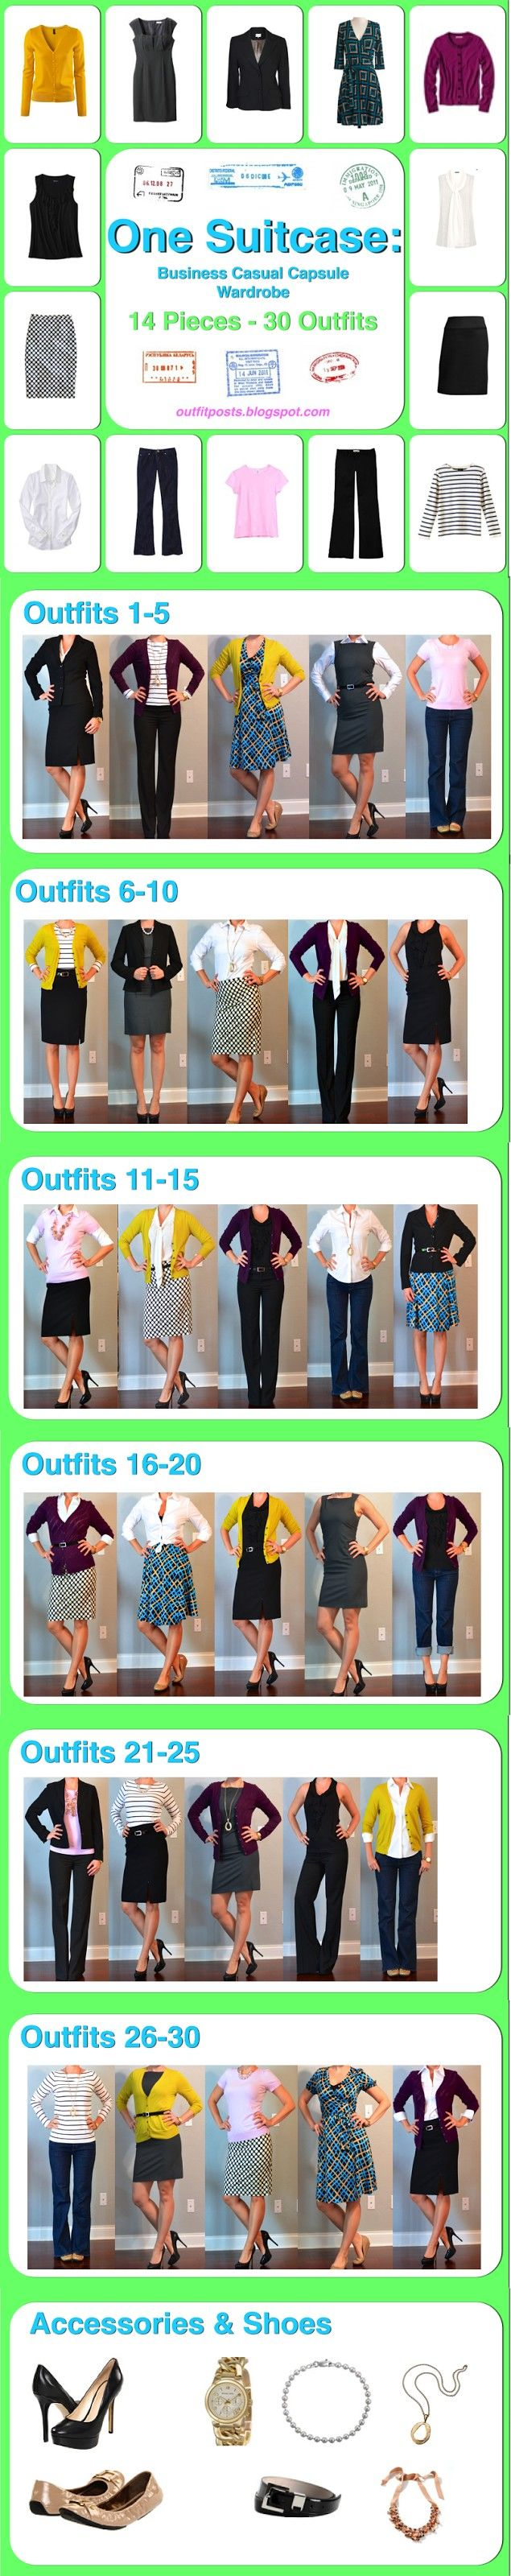 Outfit Posts: 30 different outfits that can be made from only 14 pieces of clothing.     Along with this post, this blog has some great outfit ideas that are super cute!